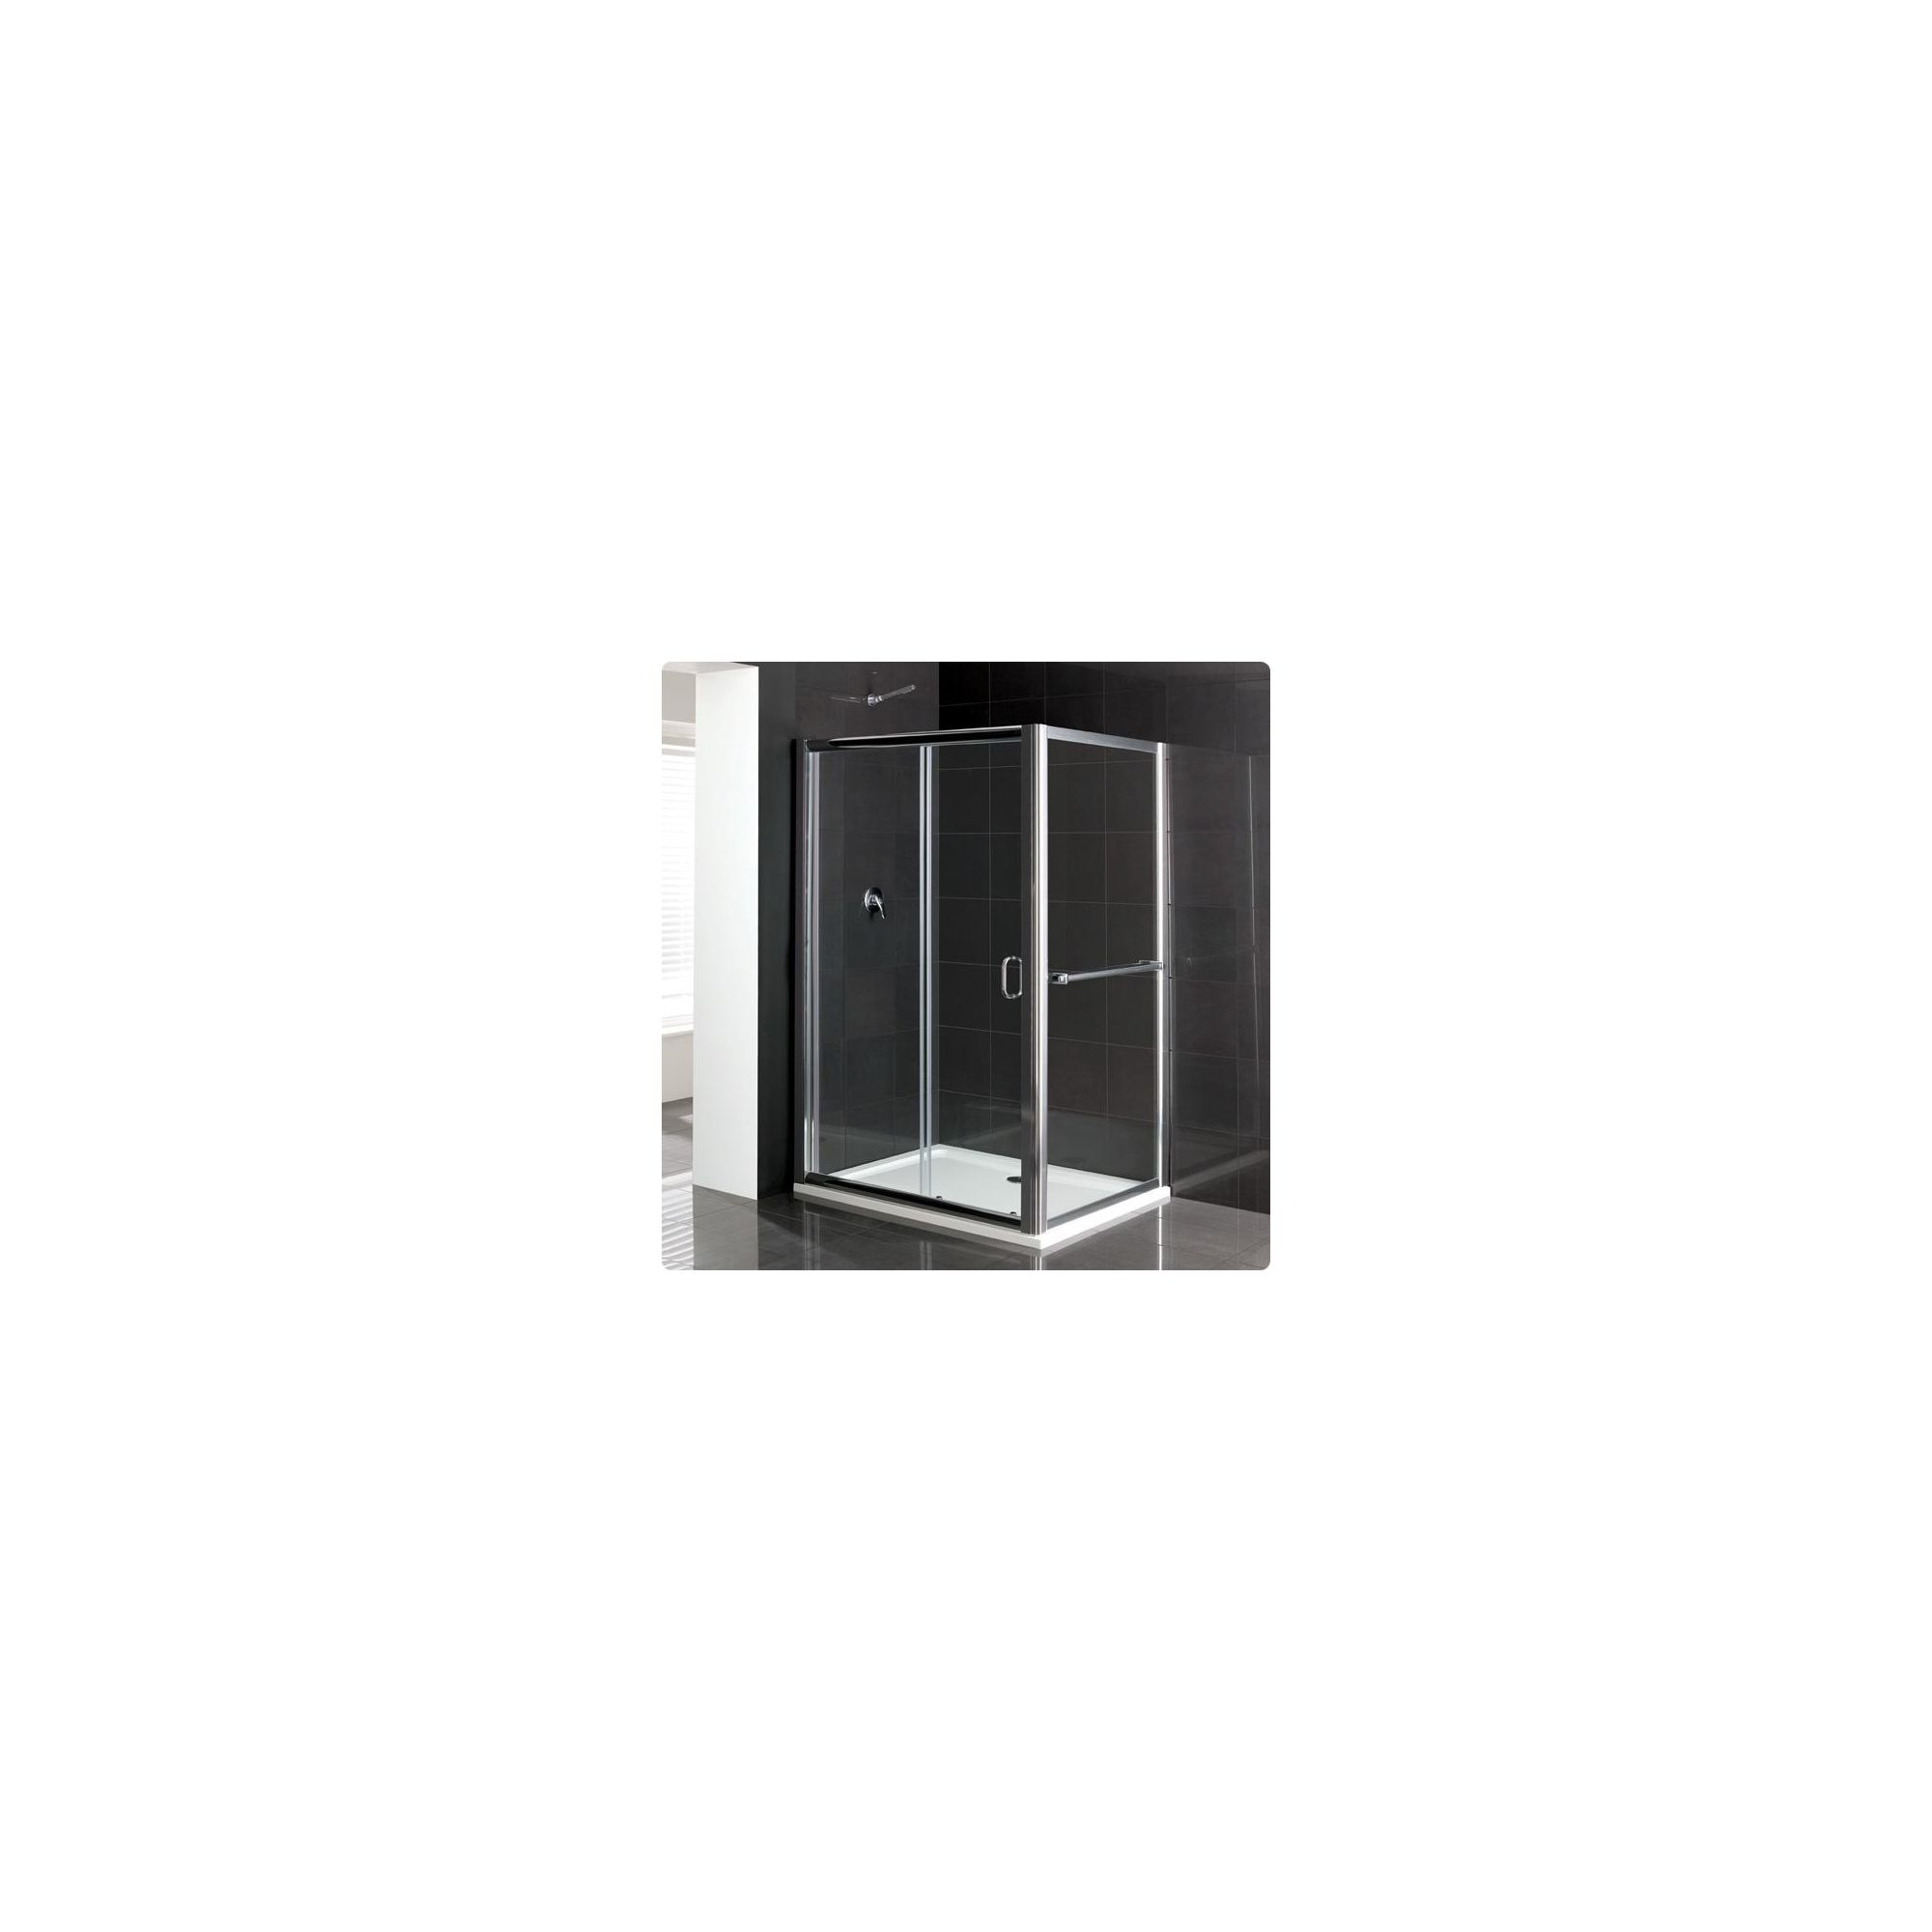 Duchy Elite Silver Sliding Door Shower Enclosure with Towel Rail, 1200mm x 760mm, Standard Tray, 6mm Glass at Tesco Direct